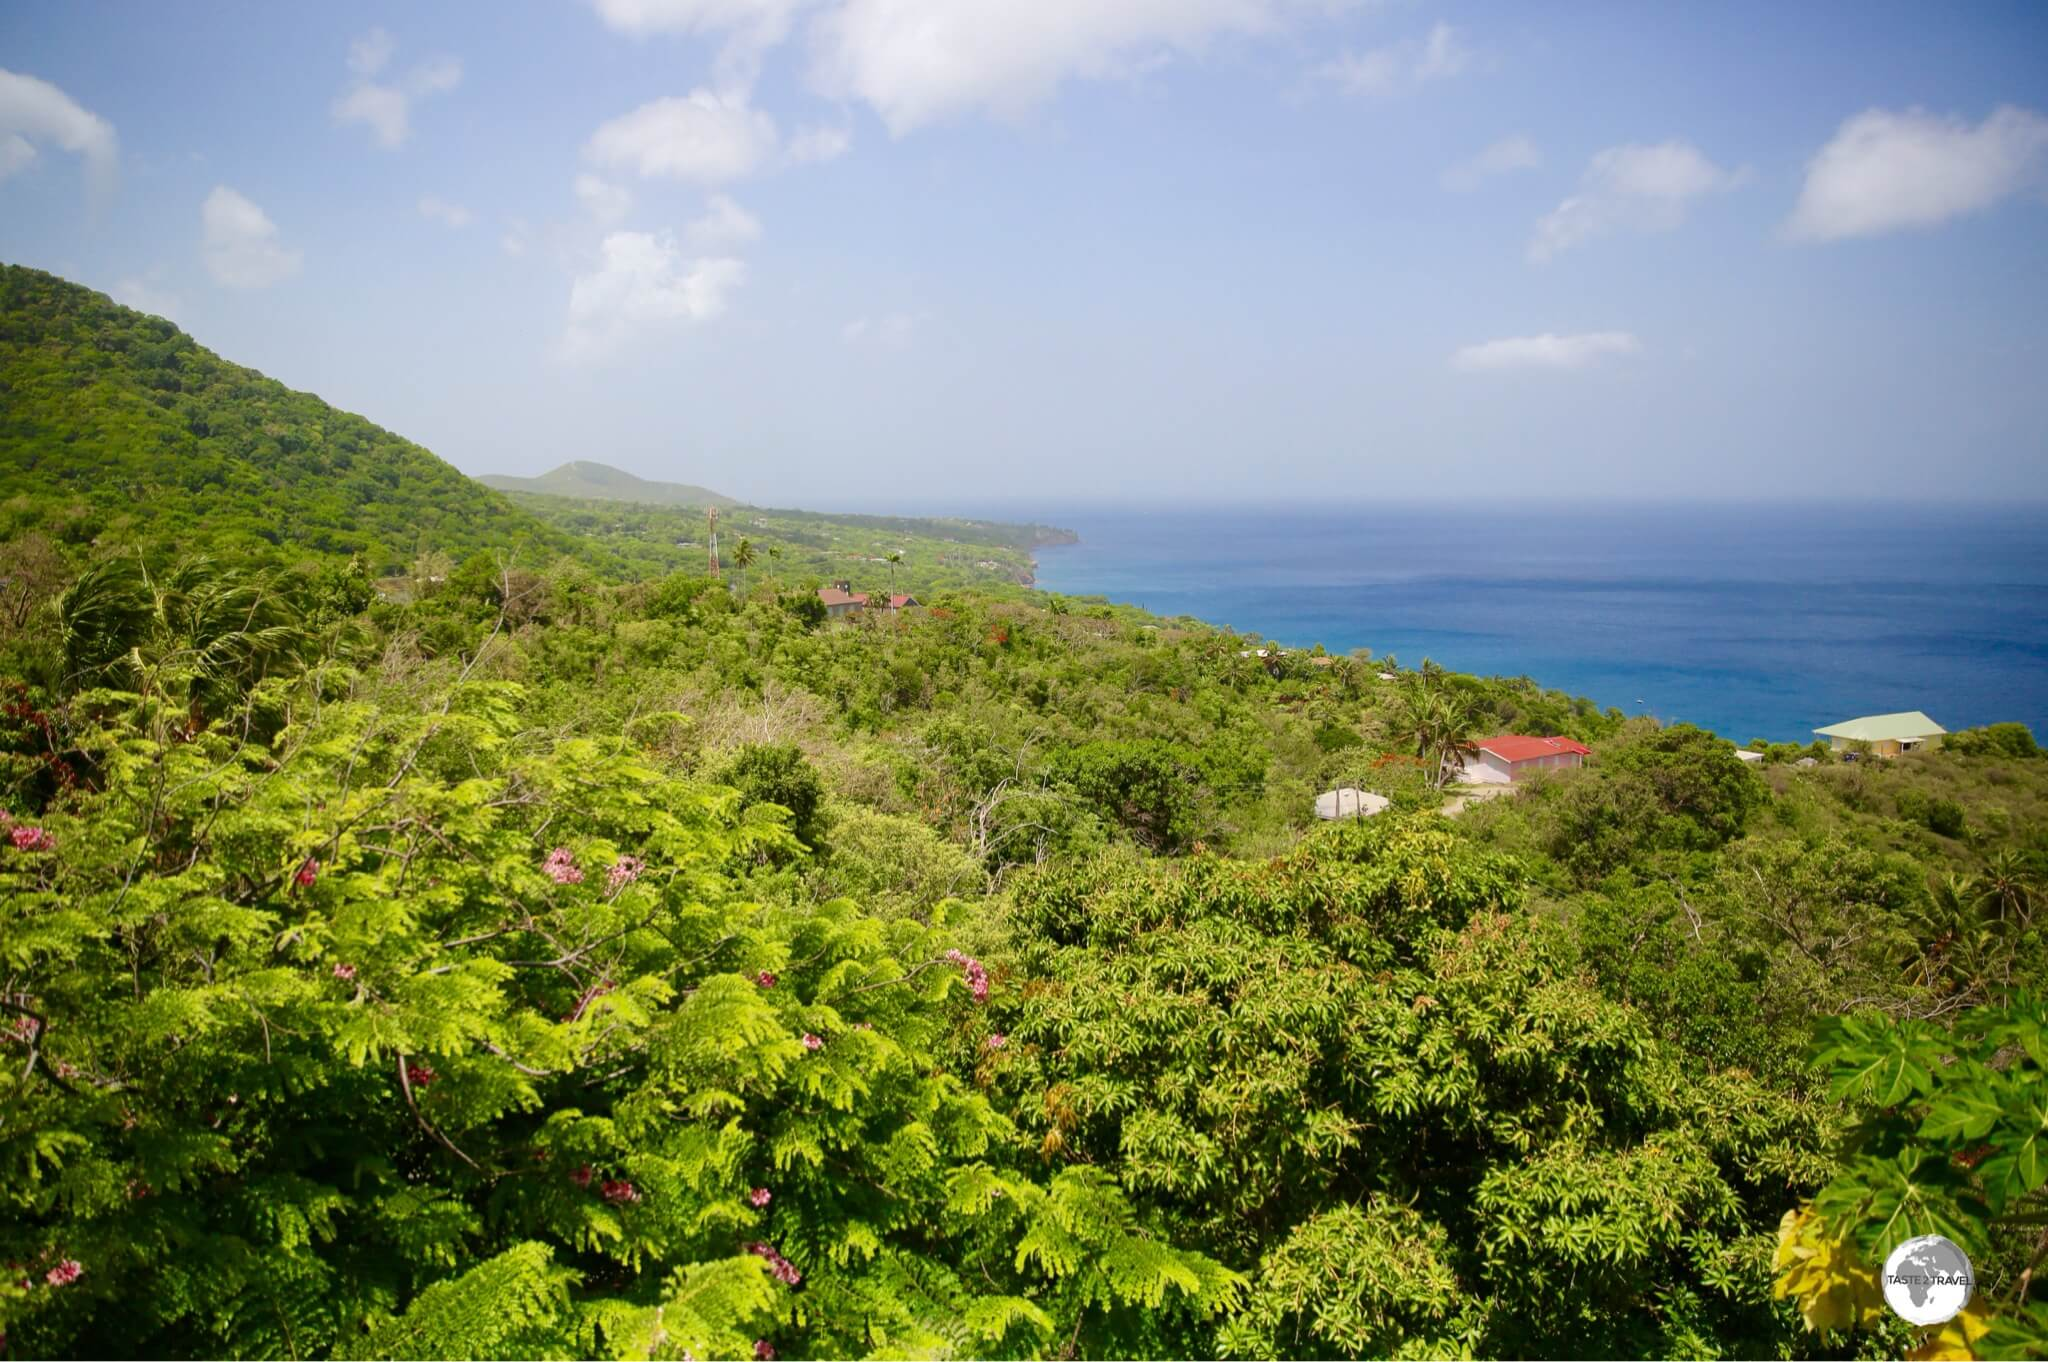 A sweeping view of the west coast of Montserrat from the Gingerbread Hill Guest House.